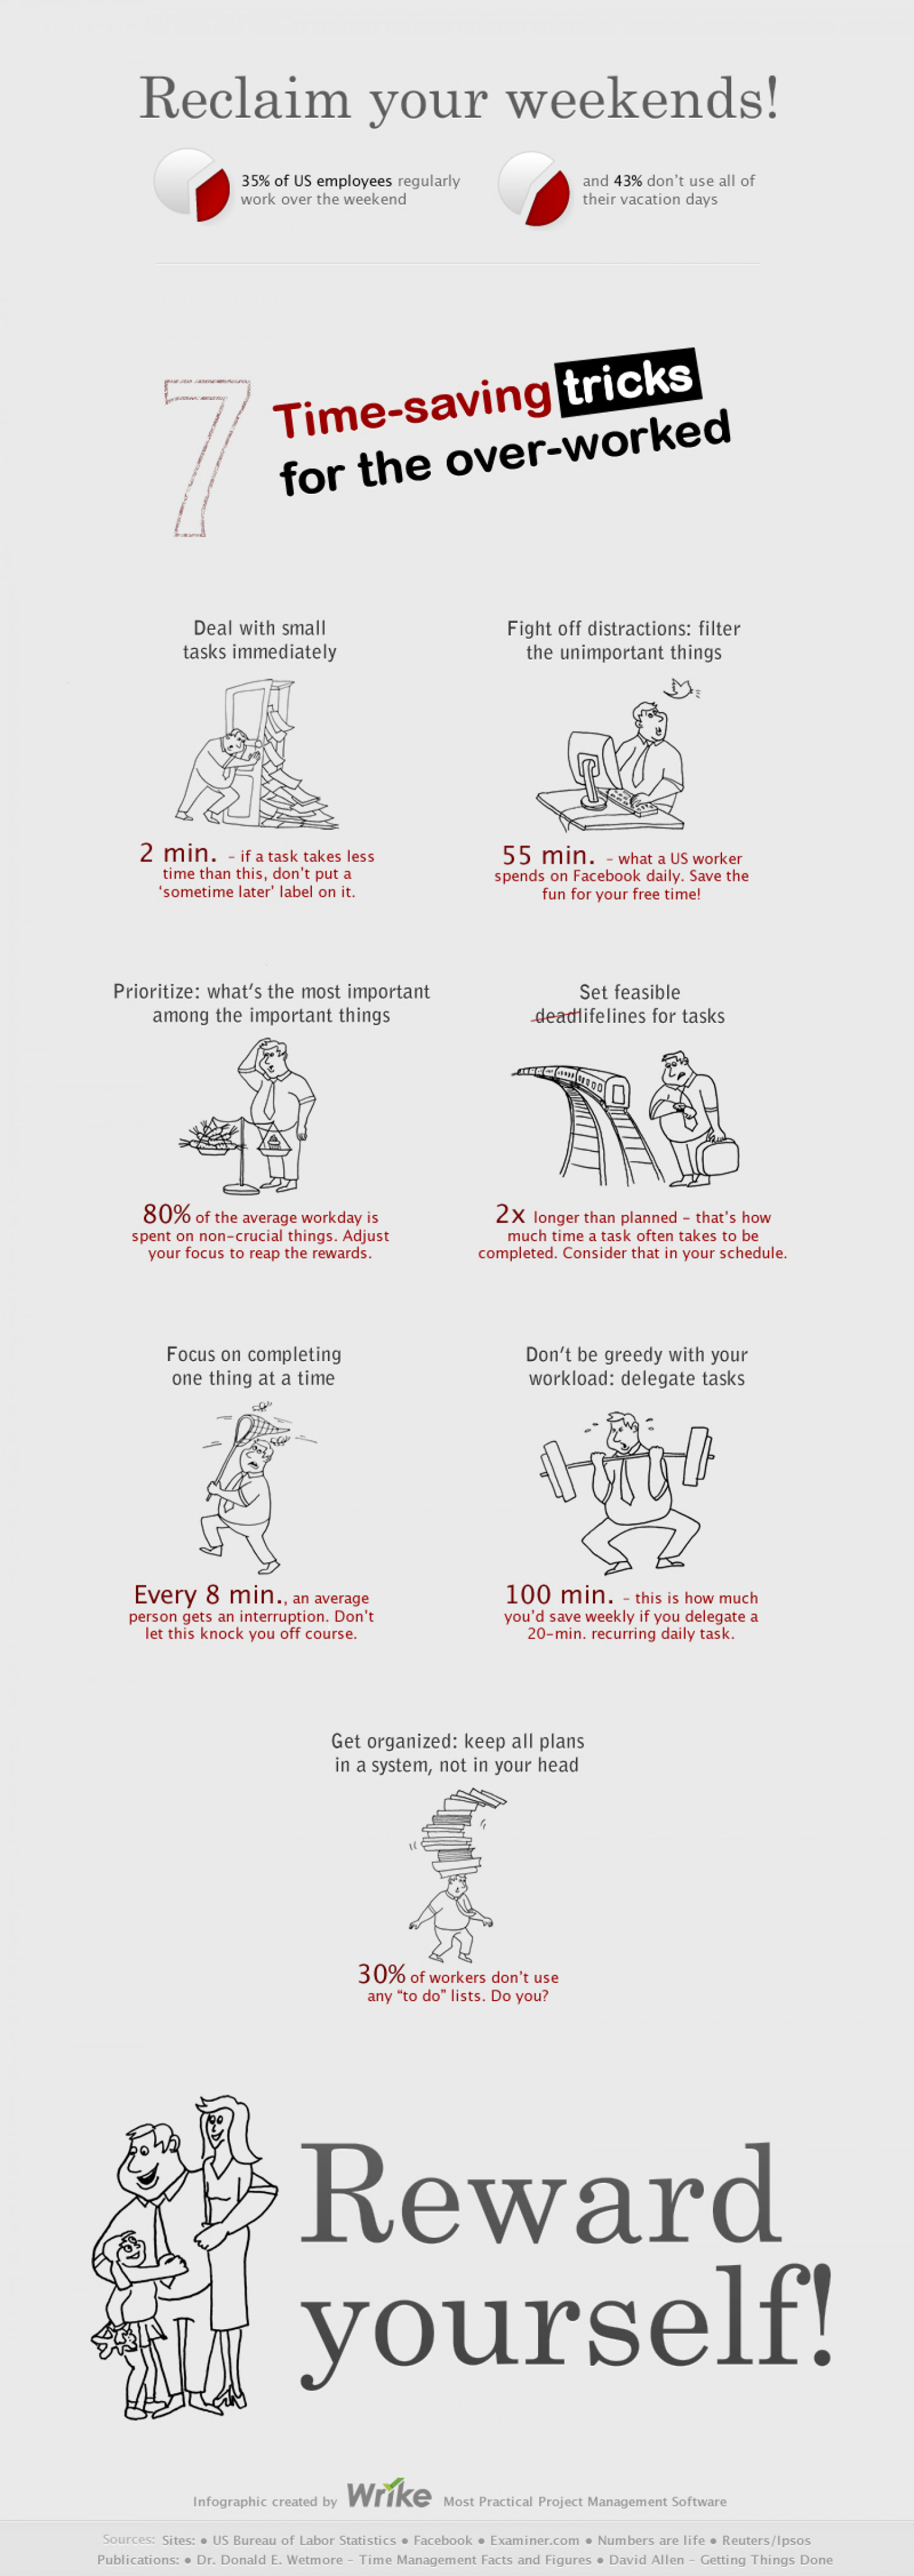 7 Time-Saving Tricks For The Overworked Infographic